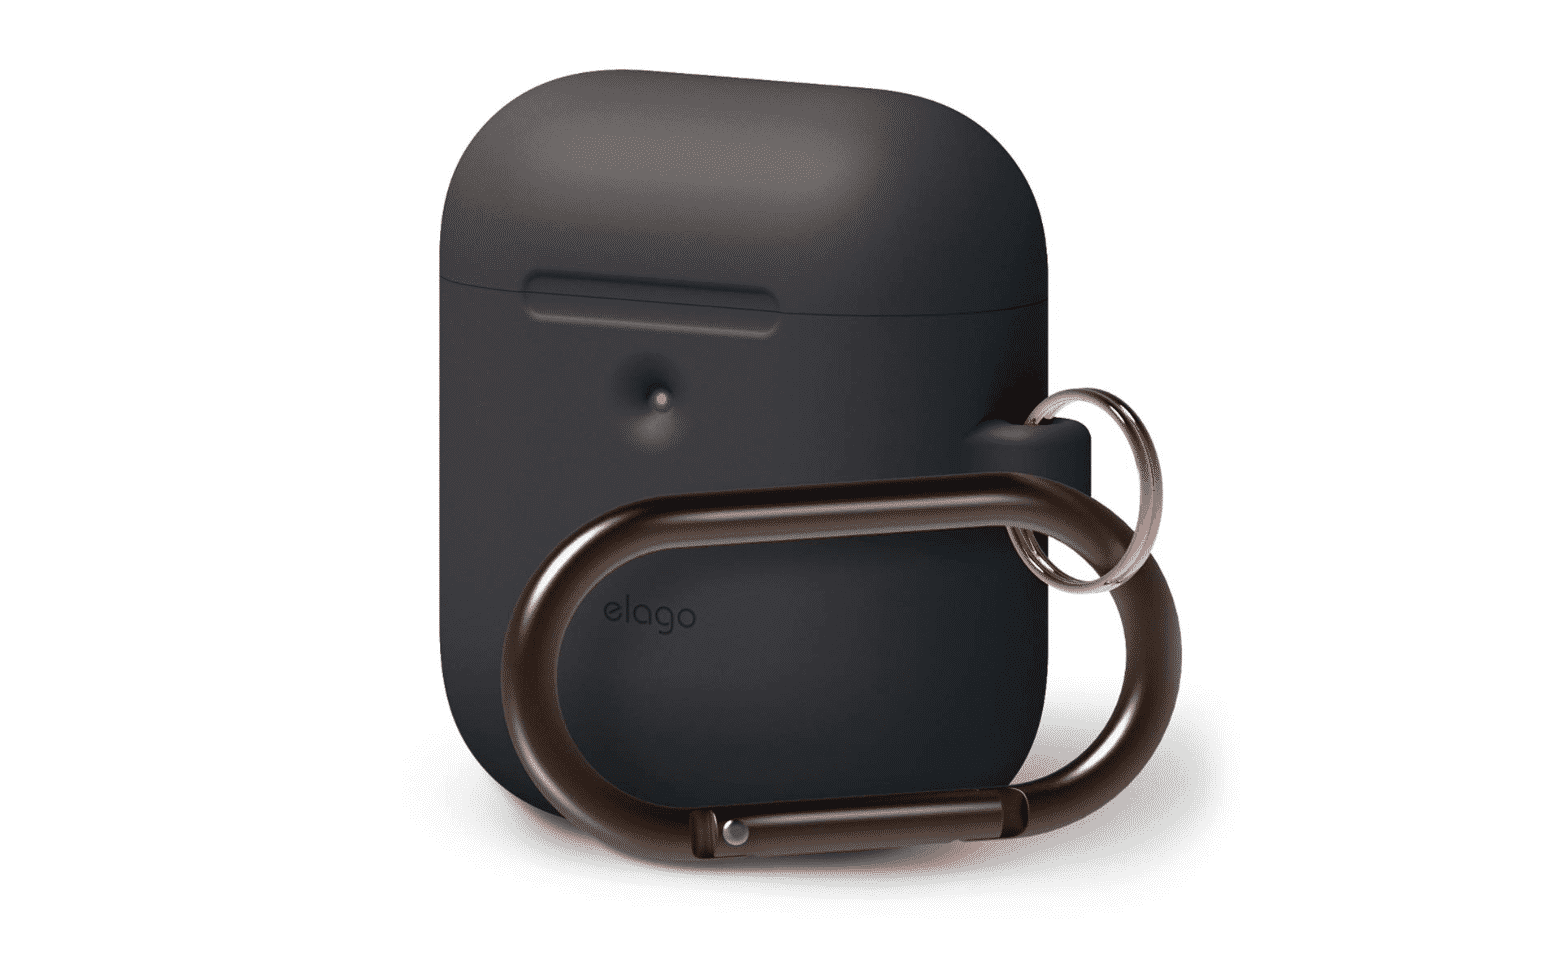 airpods 2 case amazon